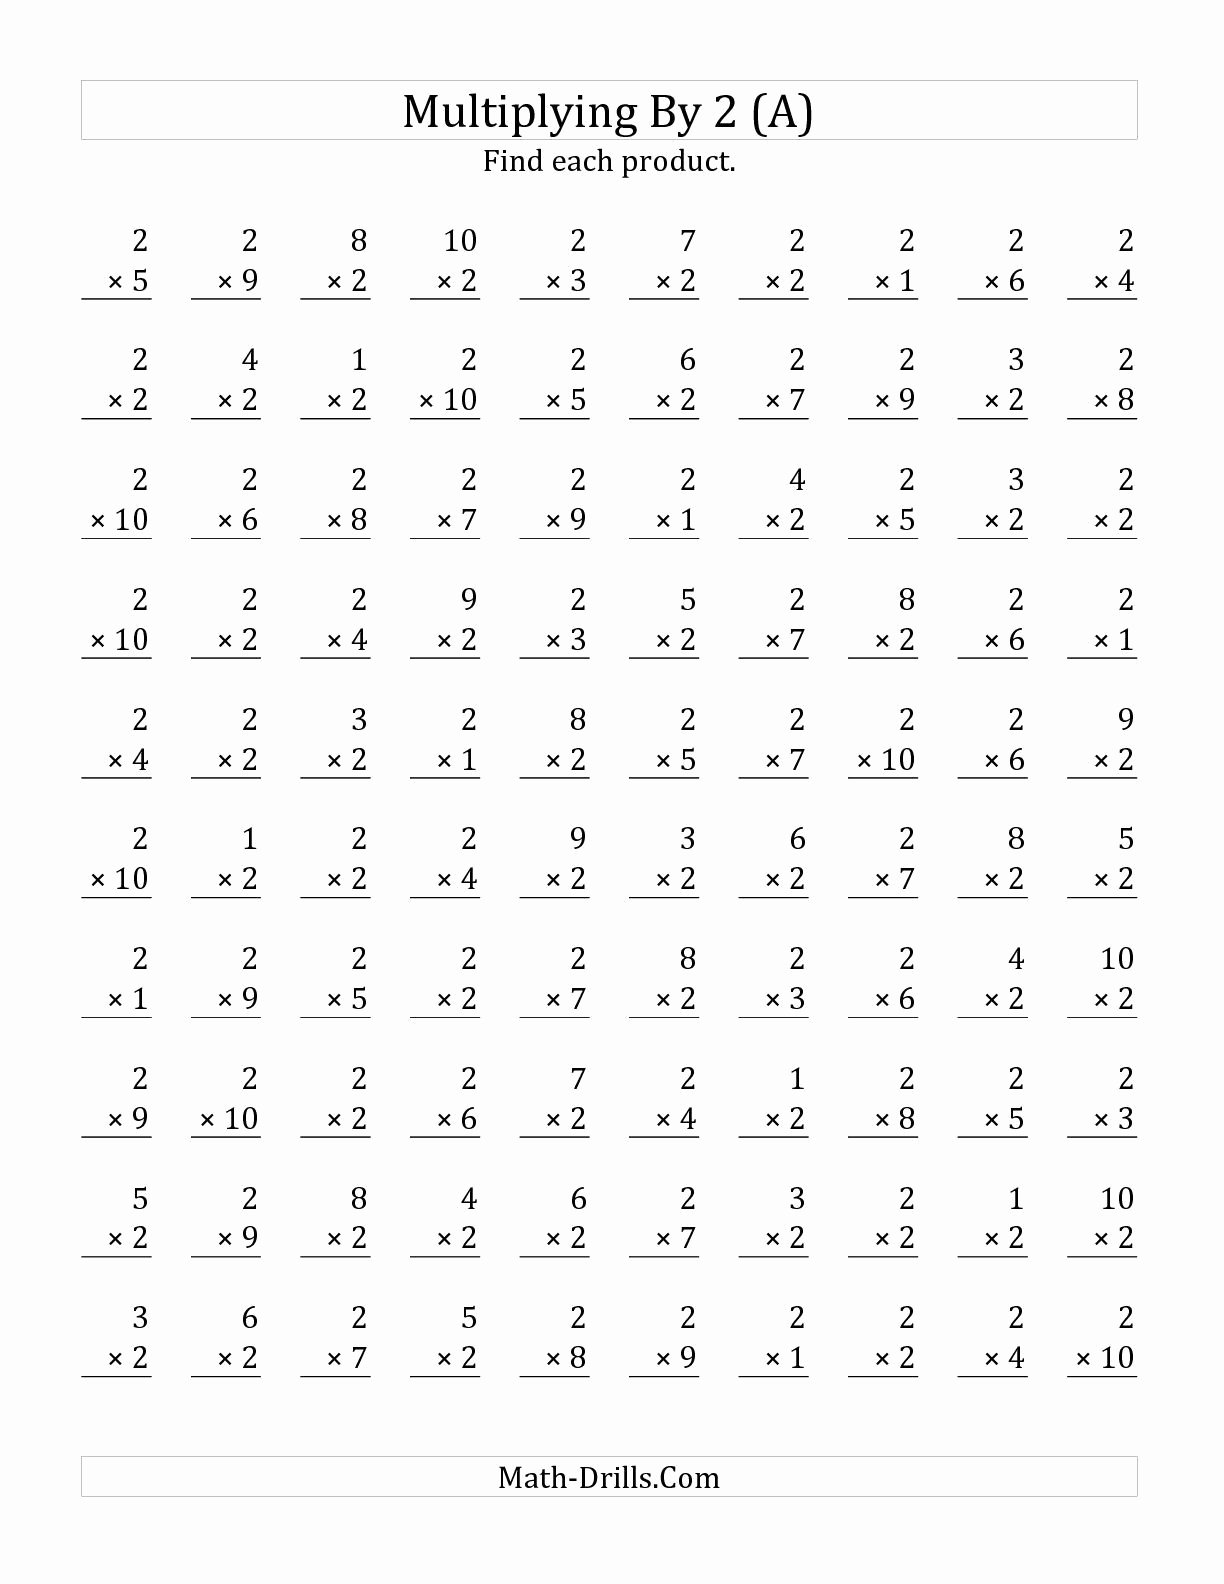 2 by 2 Multiplication Worksheets Inspirational the Multiplying 1 to 10 by 2 A Math Worksheet From the